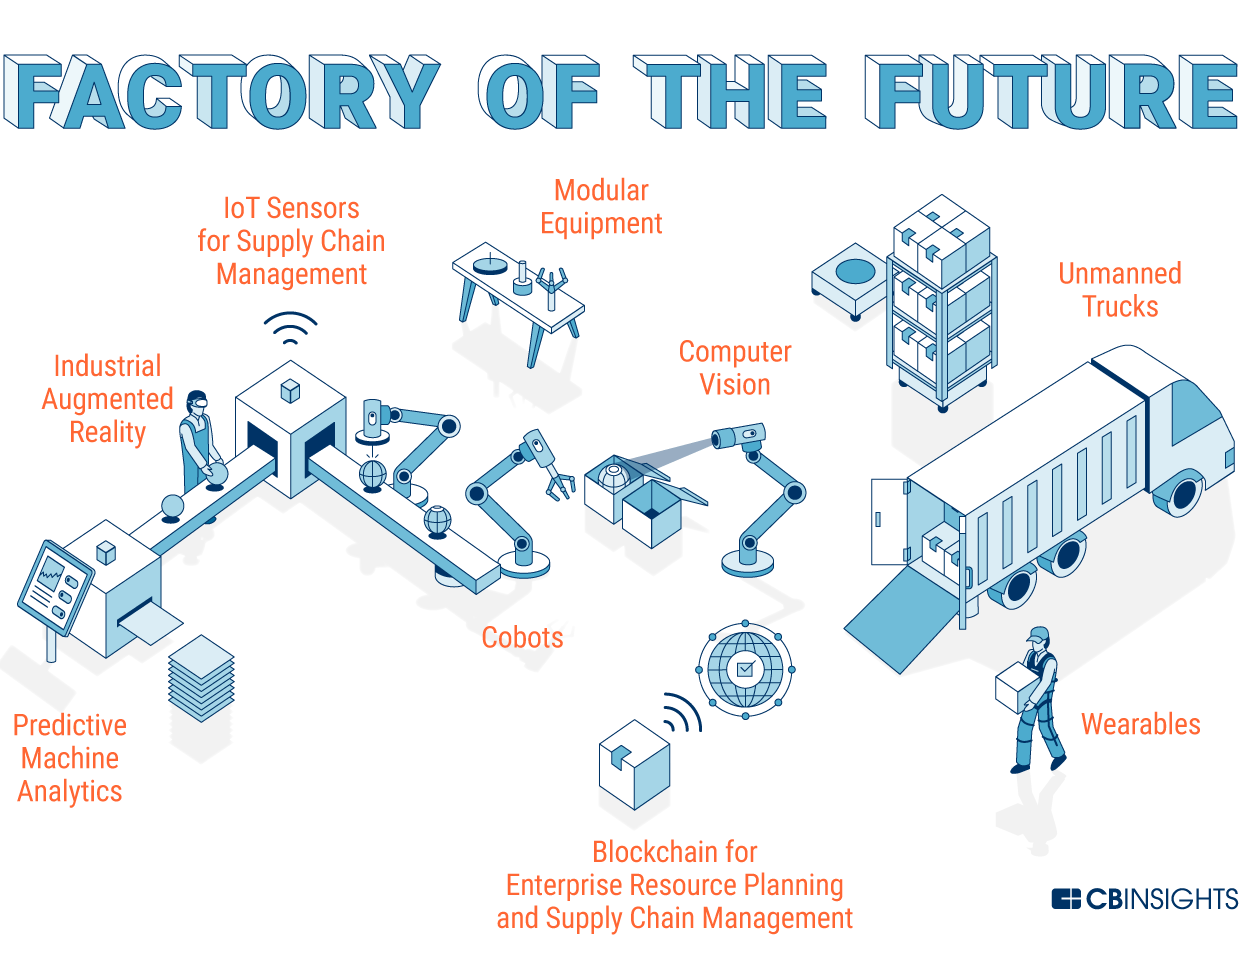 Future Factory How Technology Is Transforming Manufacturing Circuit Board Printed Electronics Industry Providing Manufacturers Predict Overall Efficiency To Grow Annually Over The Next Five Years At 7x Rate Of Growth Seen Since 1990 And Despite Representing 117